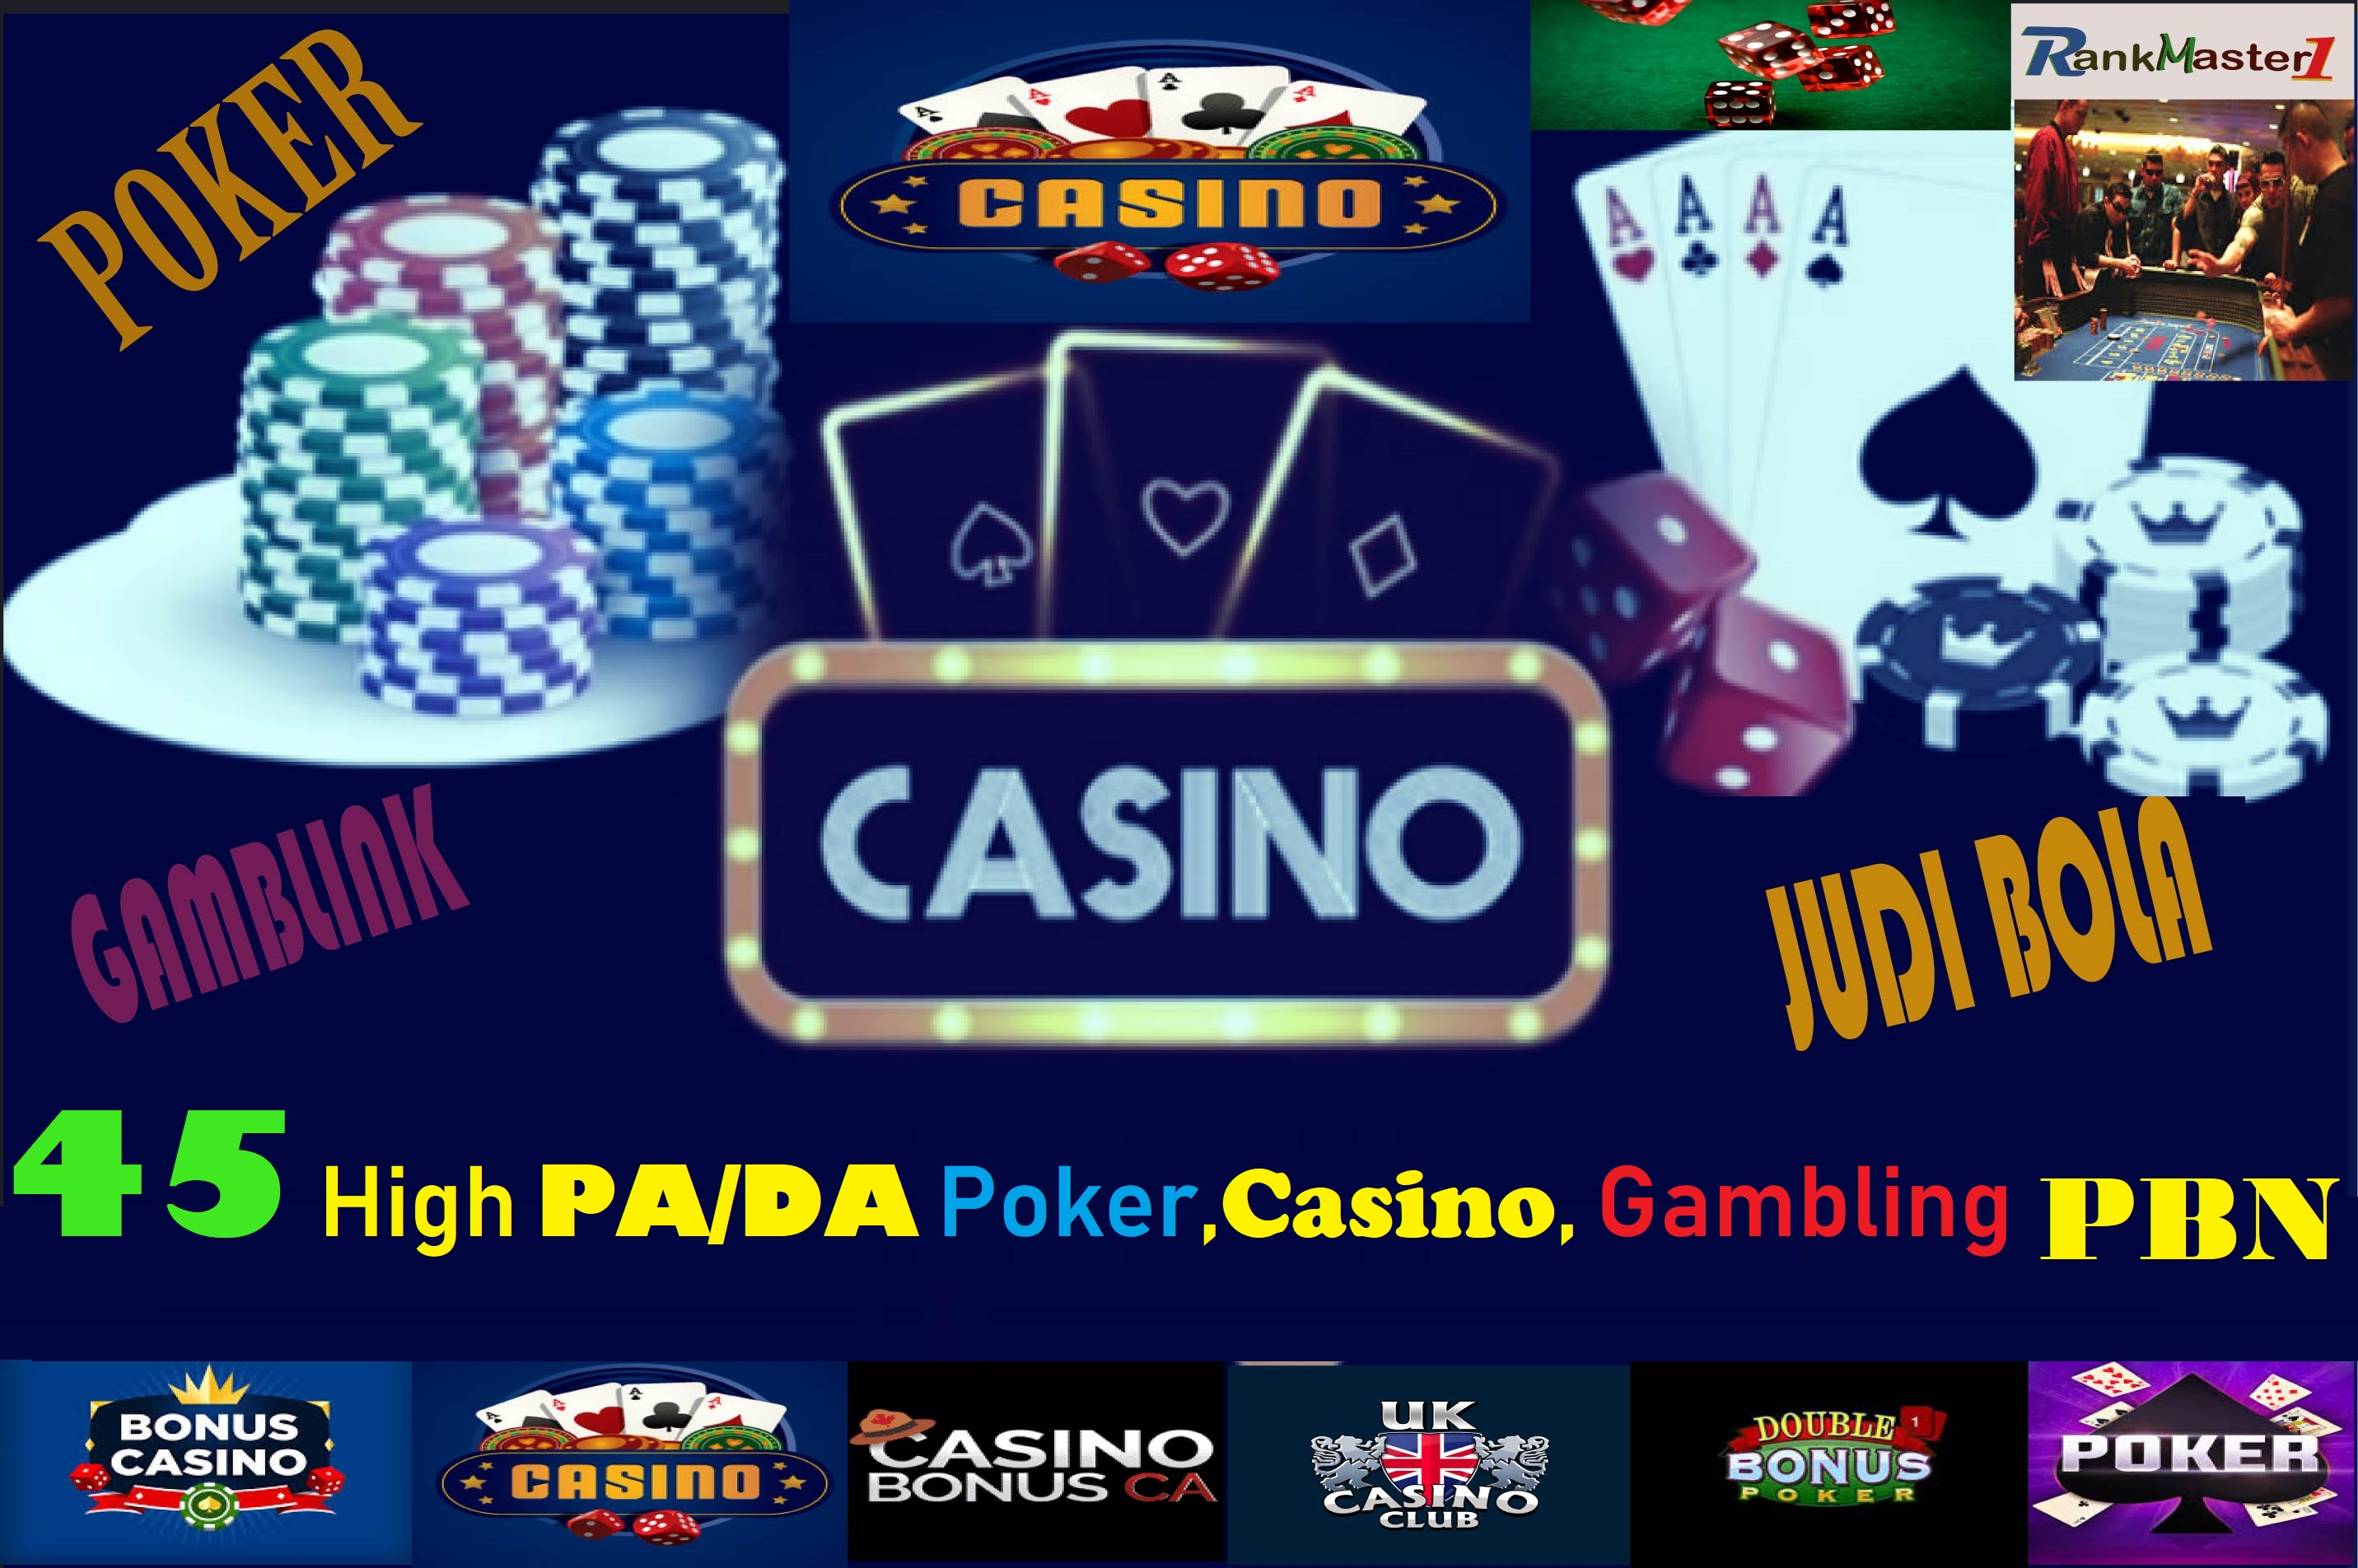 90 Powerful DA/PA Casino, Gambling, Poker PBN Links